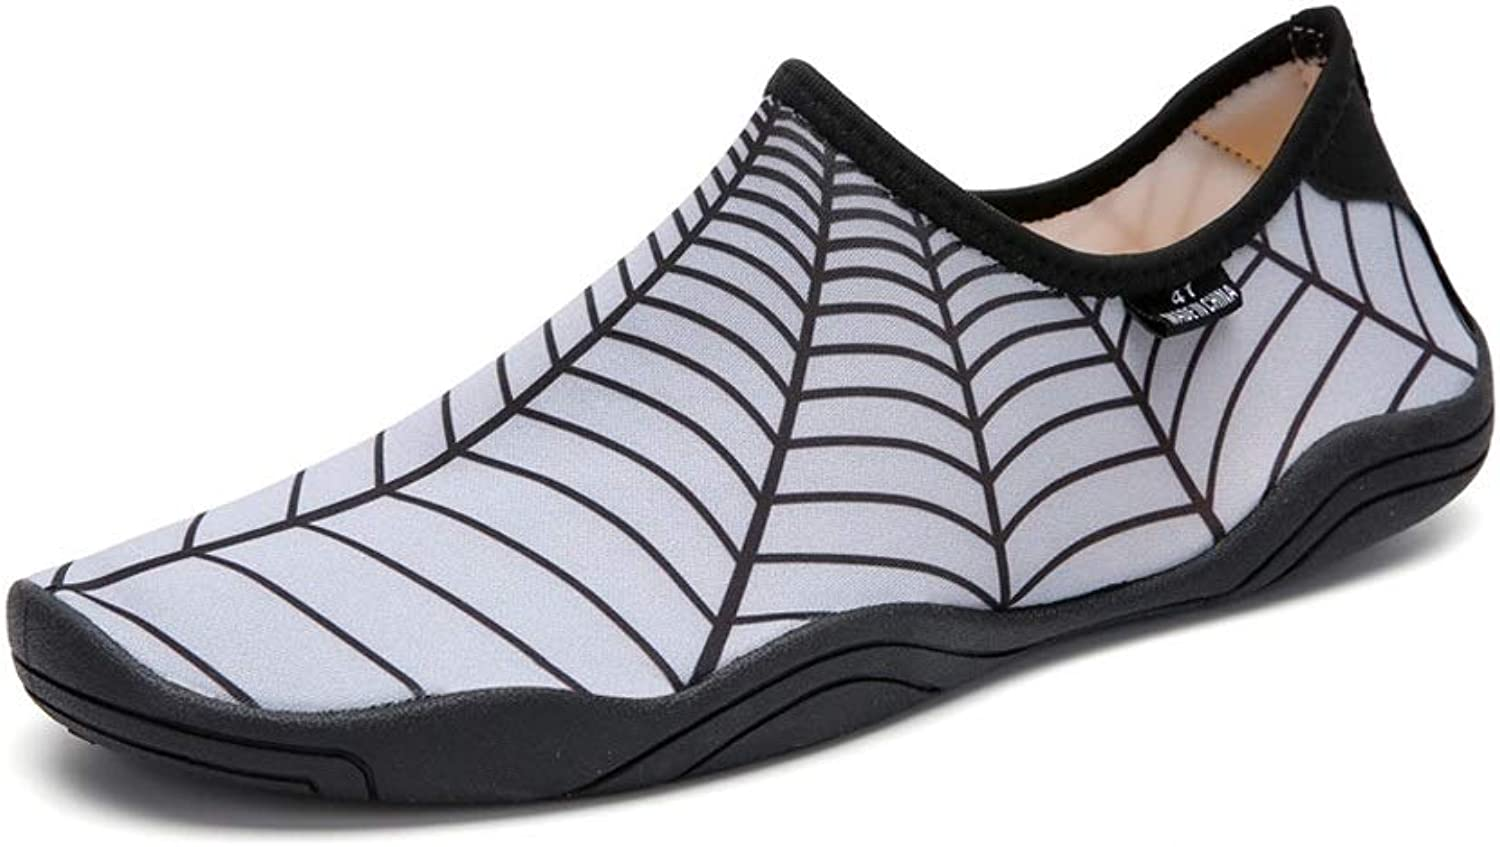 Ailj Water shoes, Summer Surf Swimming Beach shoes Men and Women Quick-Drying Diving shoes Beach shoes Suitable for Wading Drifting